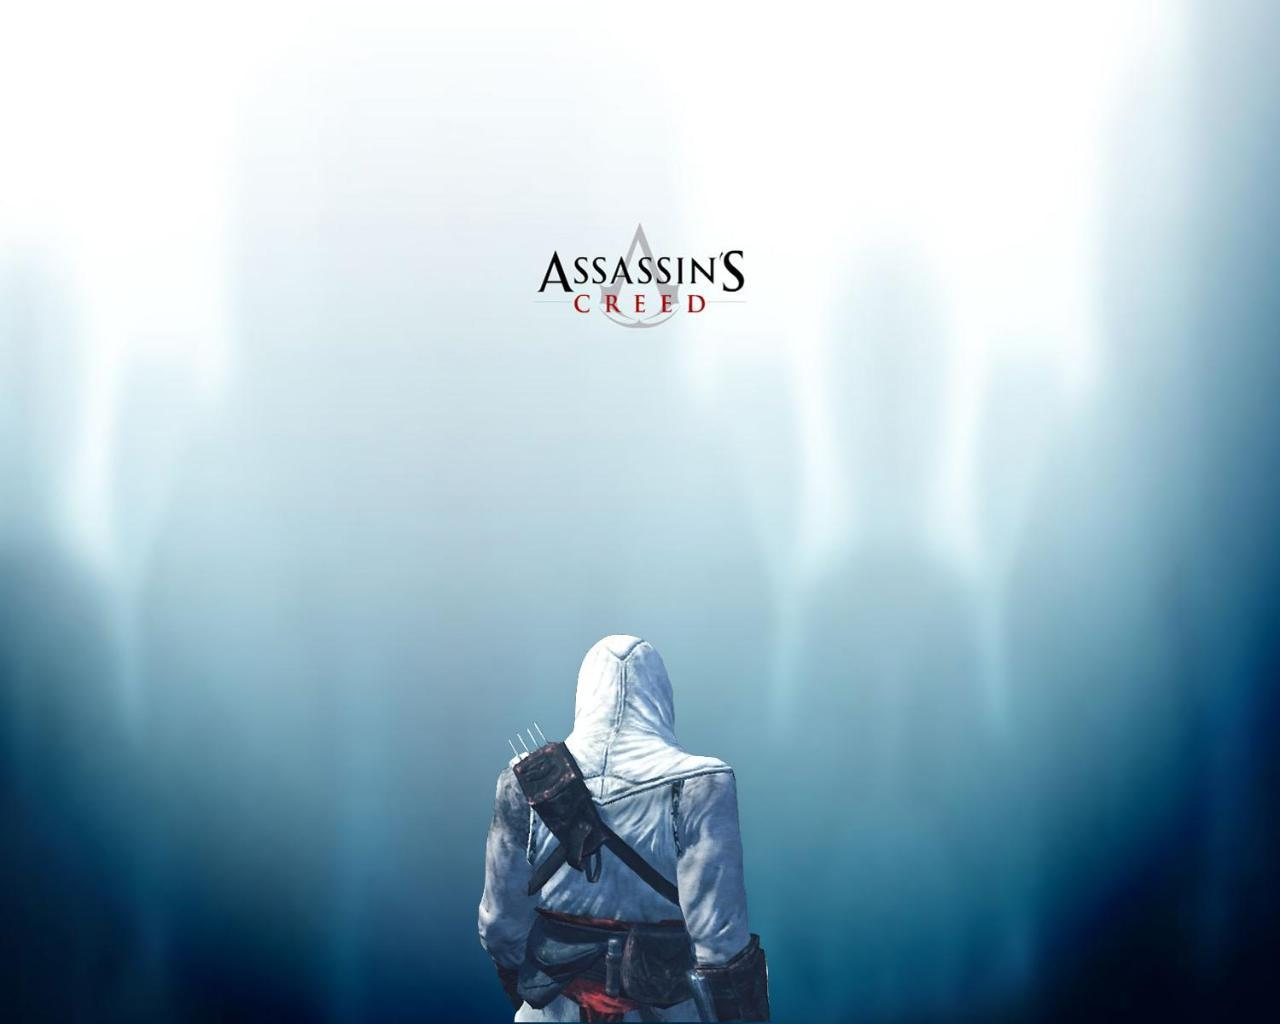 Обои Assassin creed 1280x1024